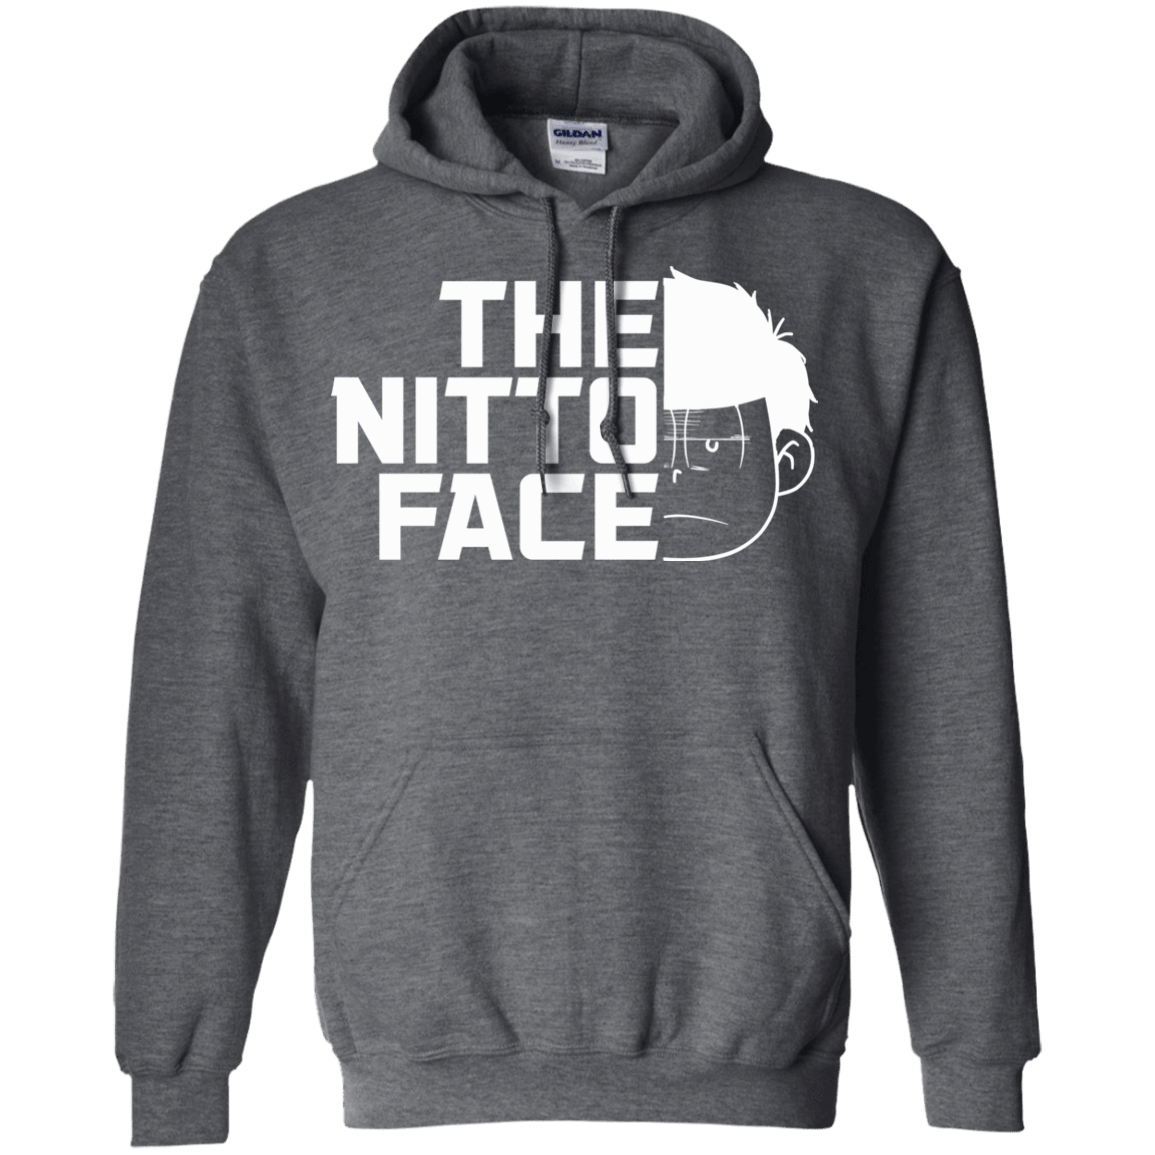 Sweatshirts Dark Heather / S The Nitto Face Pullover Hoodie